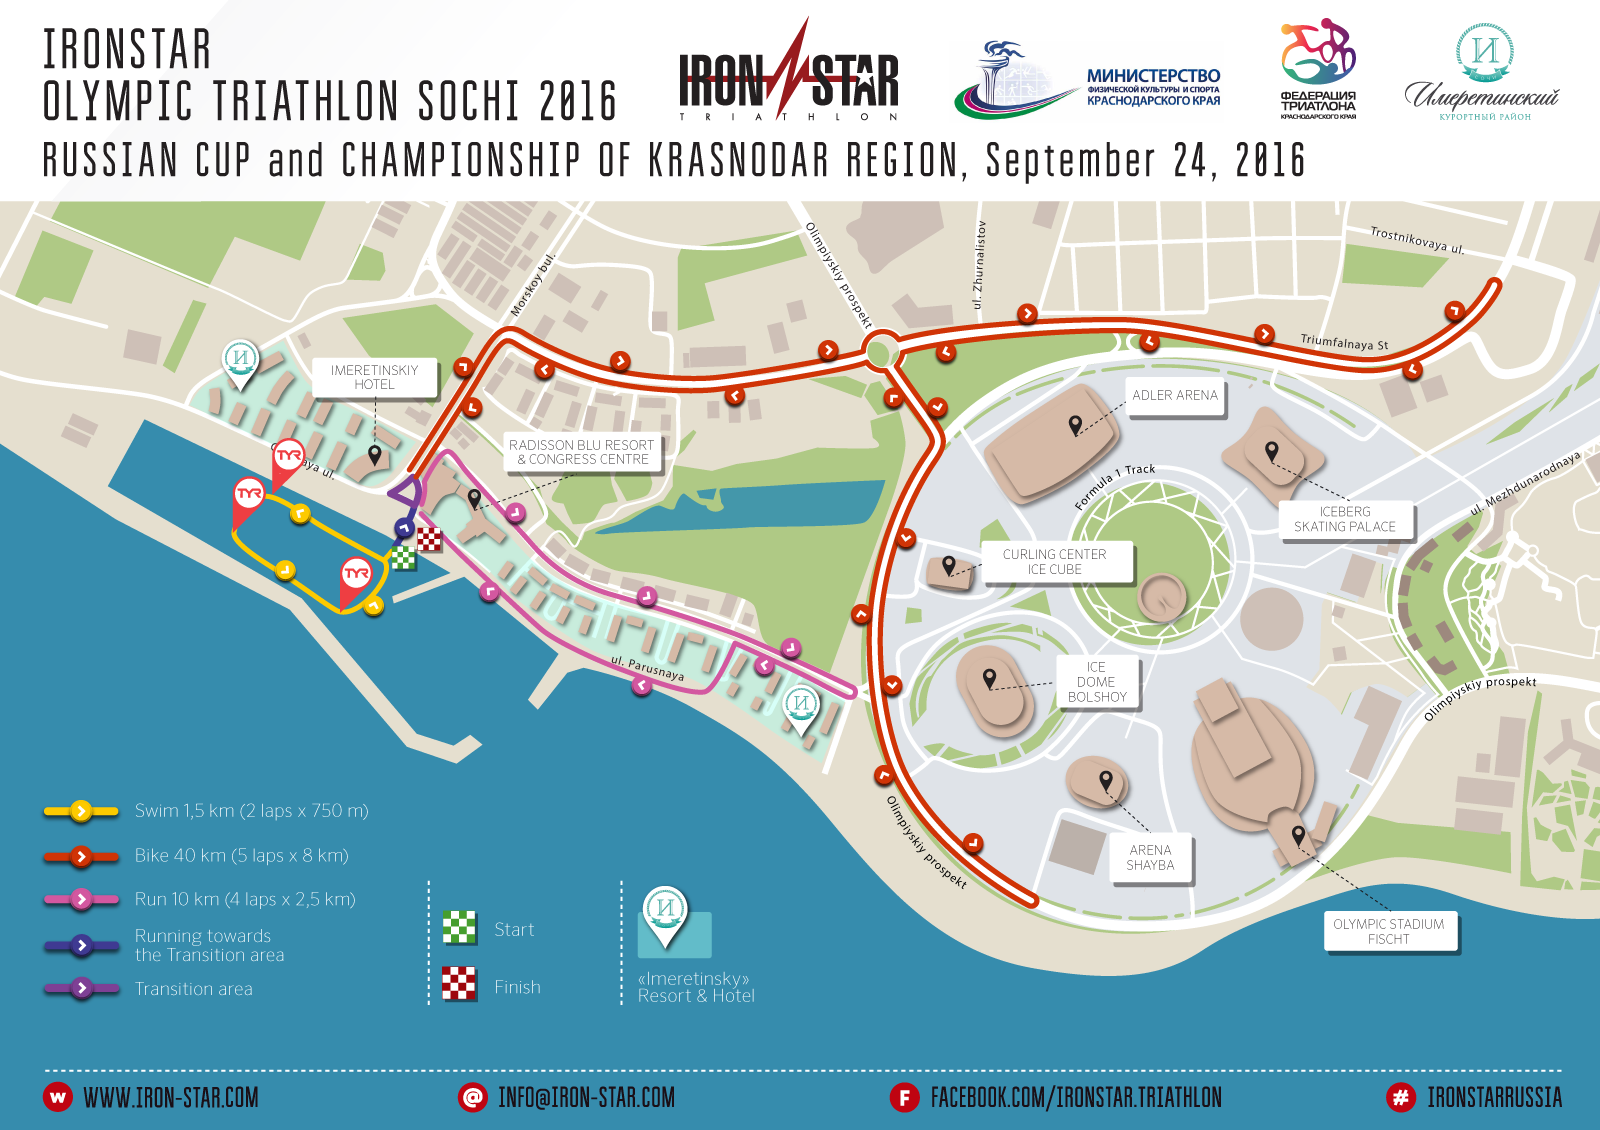 Route of IRONSTAR OLYMPIC SOCHI 2016